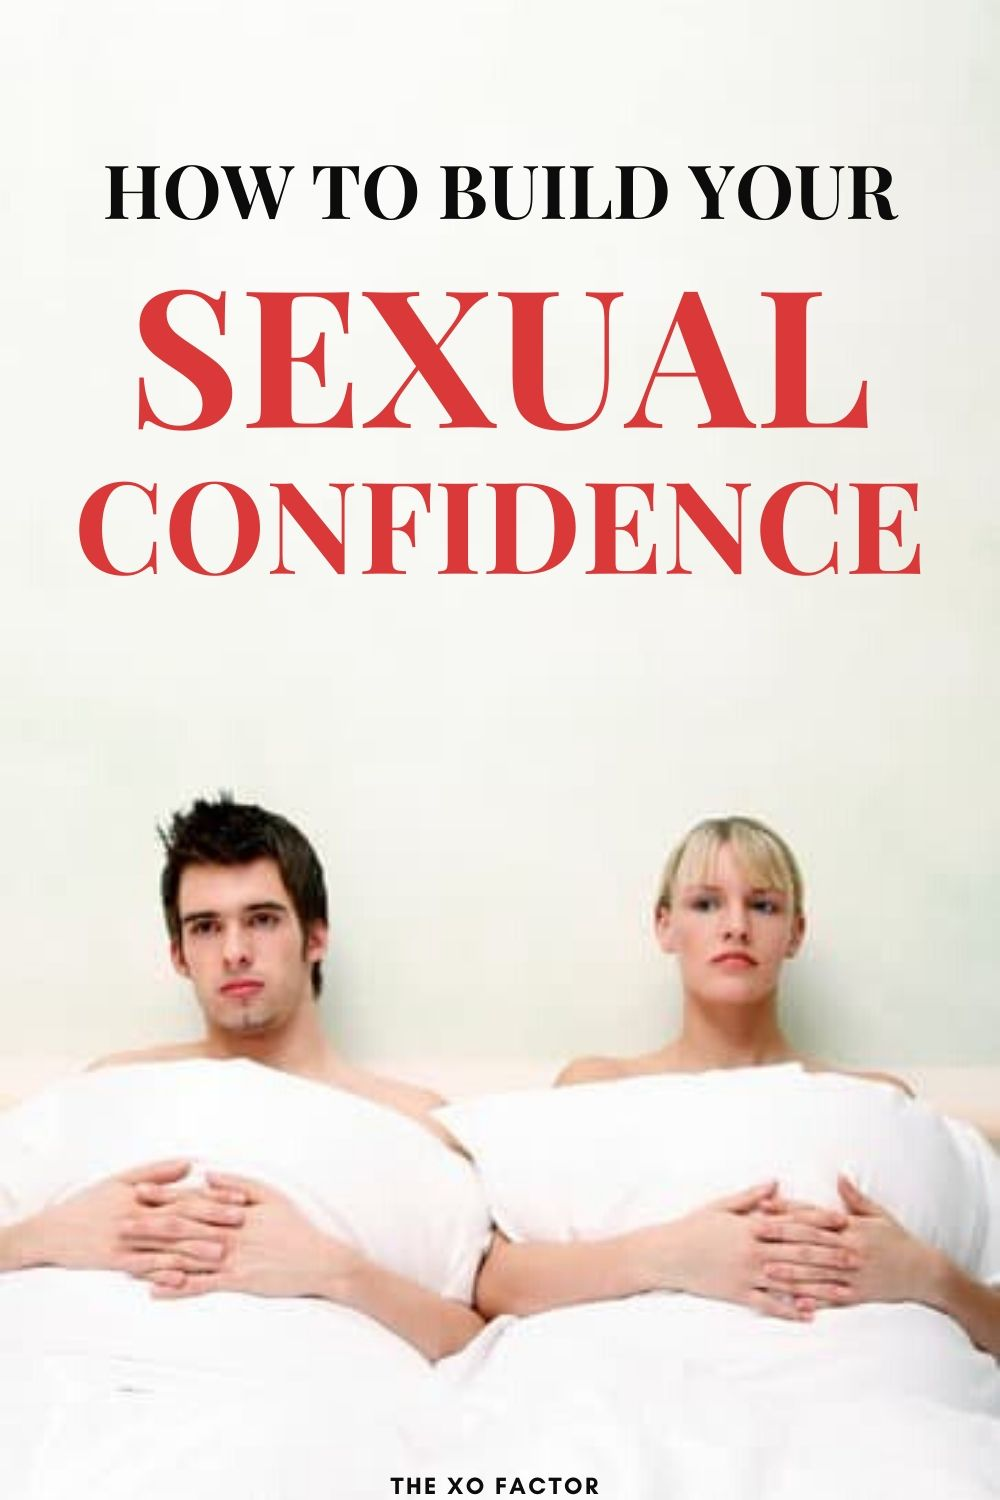 how to build your sexual confidence